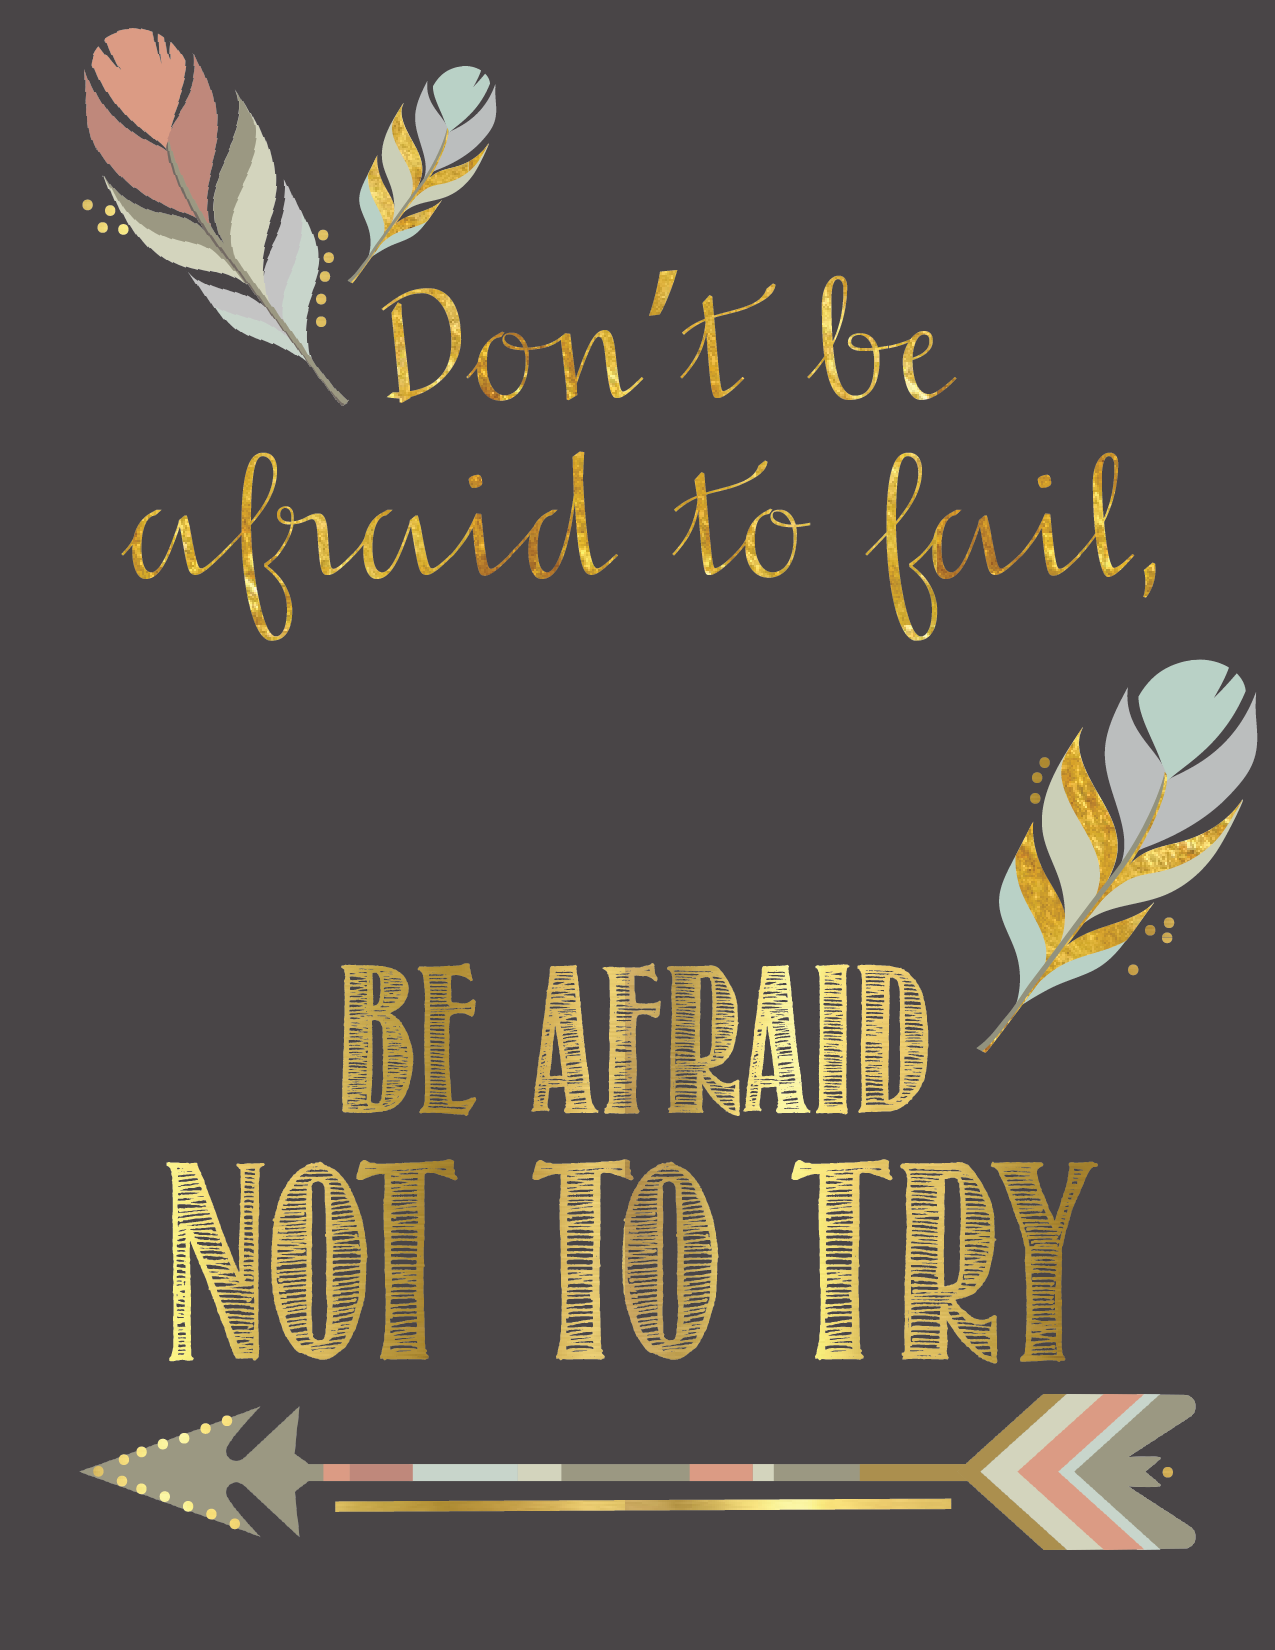 Exceptional Inspirational Quote Download; Donu0027t Be Afraid To Fail, Be Afraid Not To